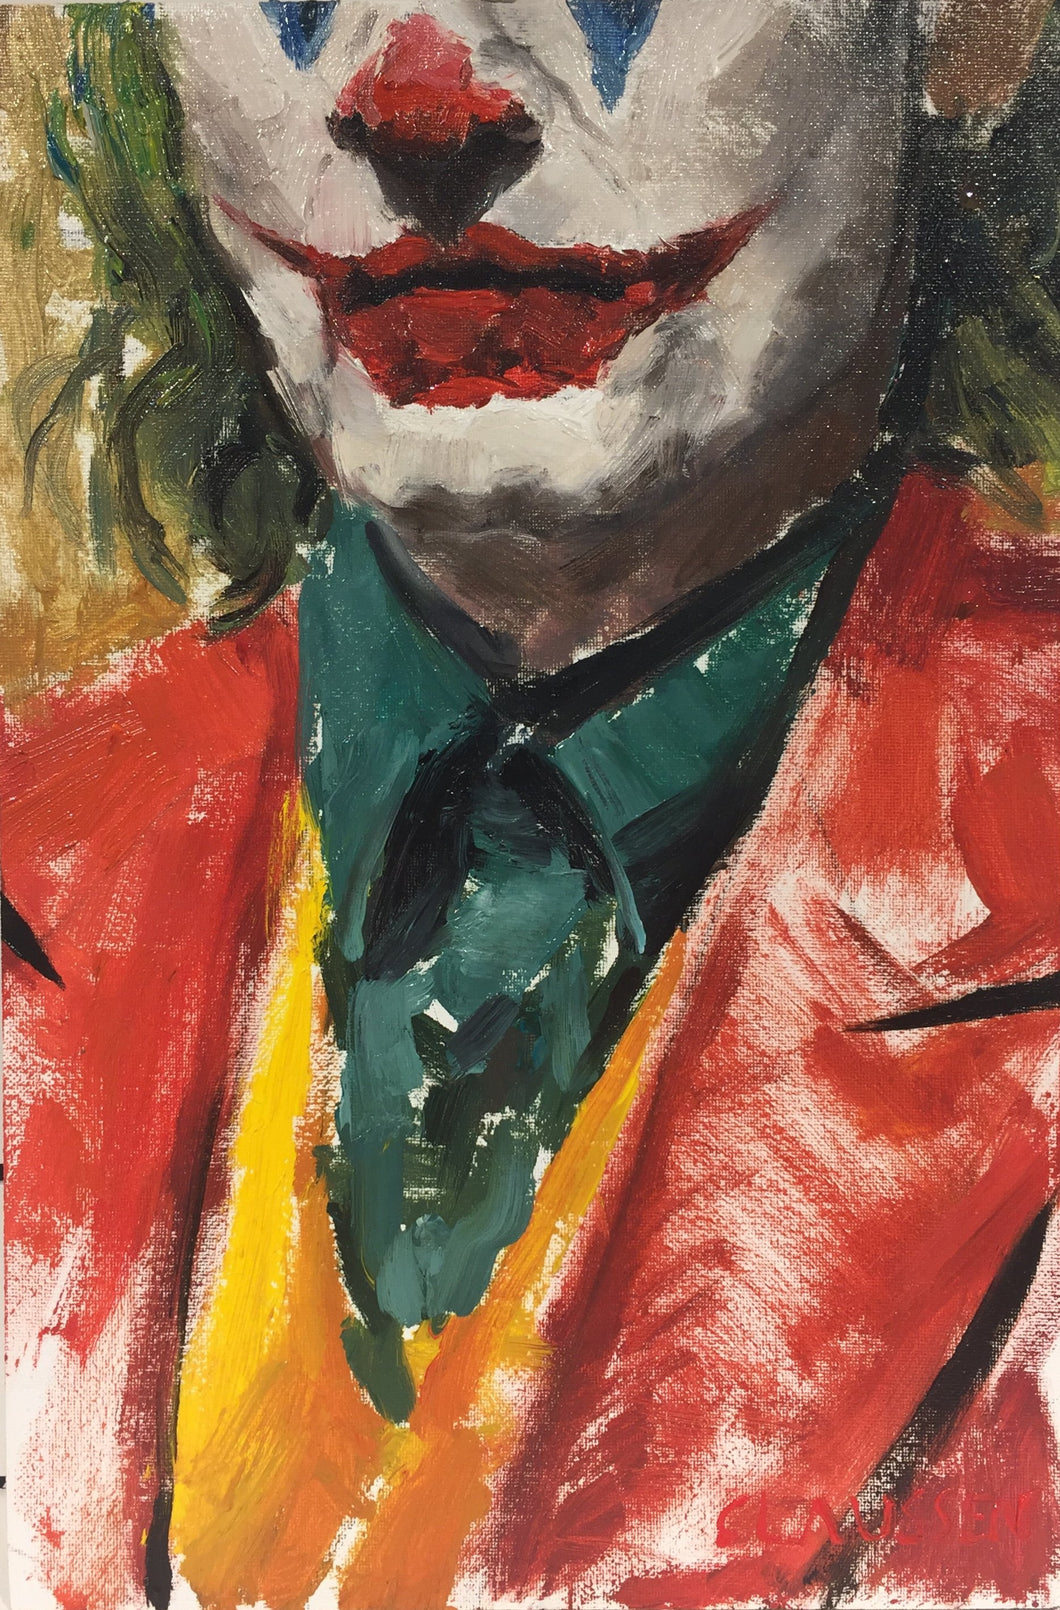 Study IV for Joker